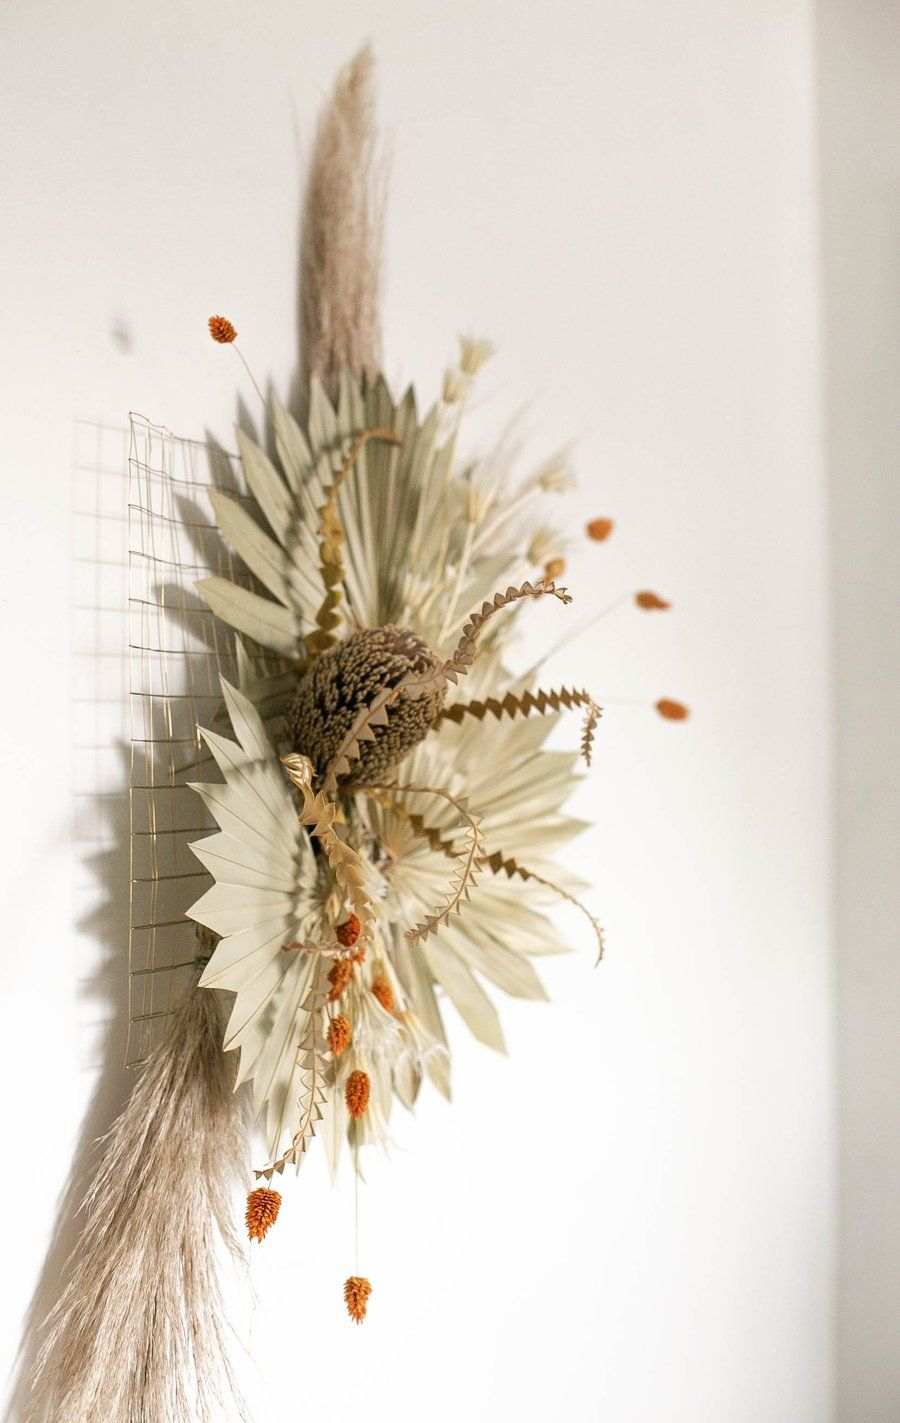 Diy Dried Flower Wall Hanging Flower Party Hanging Flower Arrangements Diy Flower Wall Hanging Flower Wall